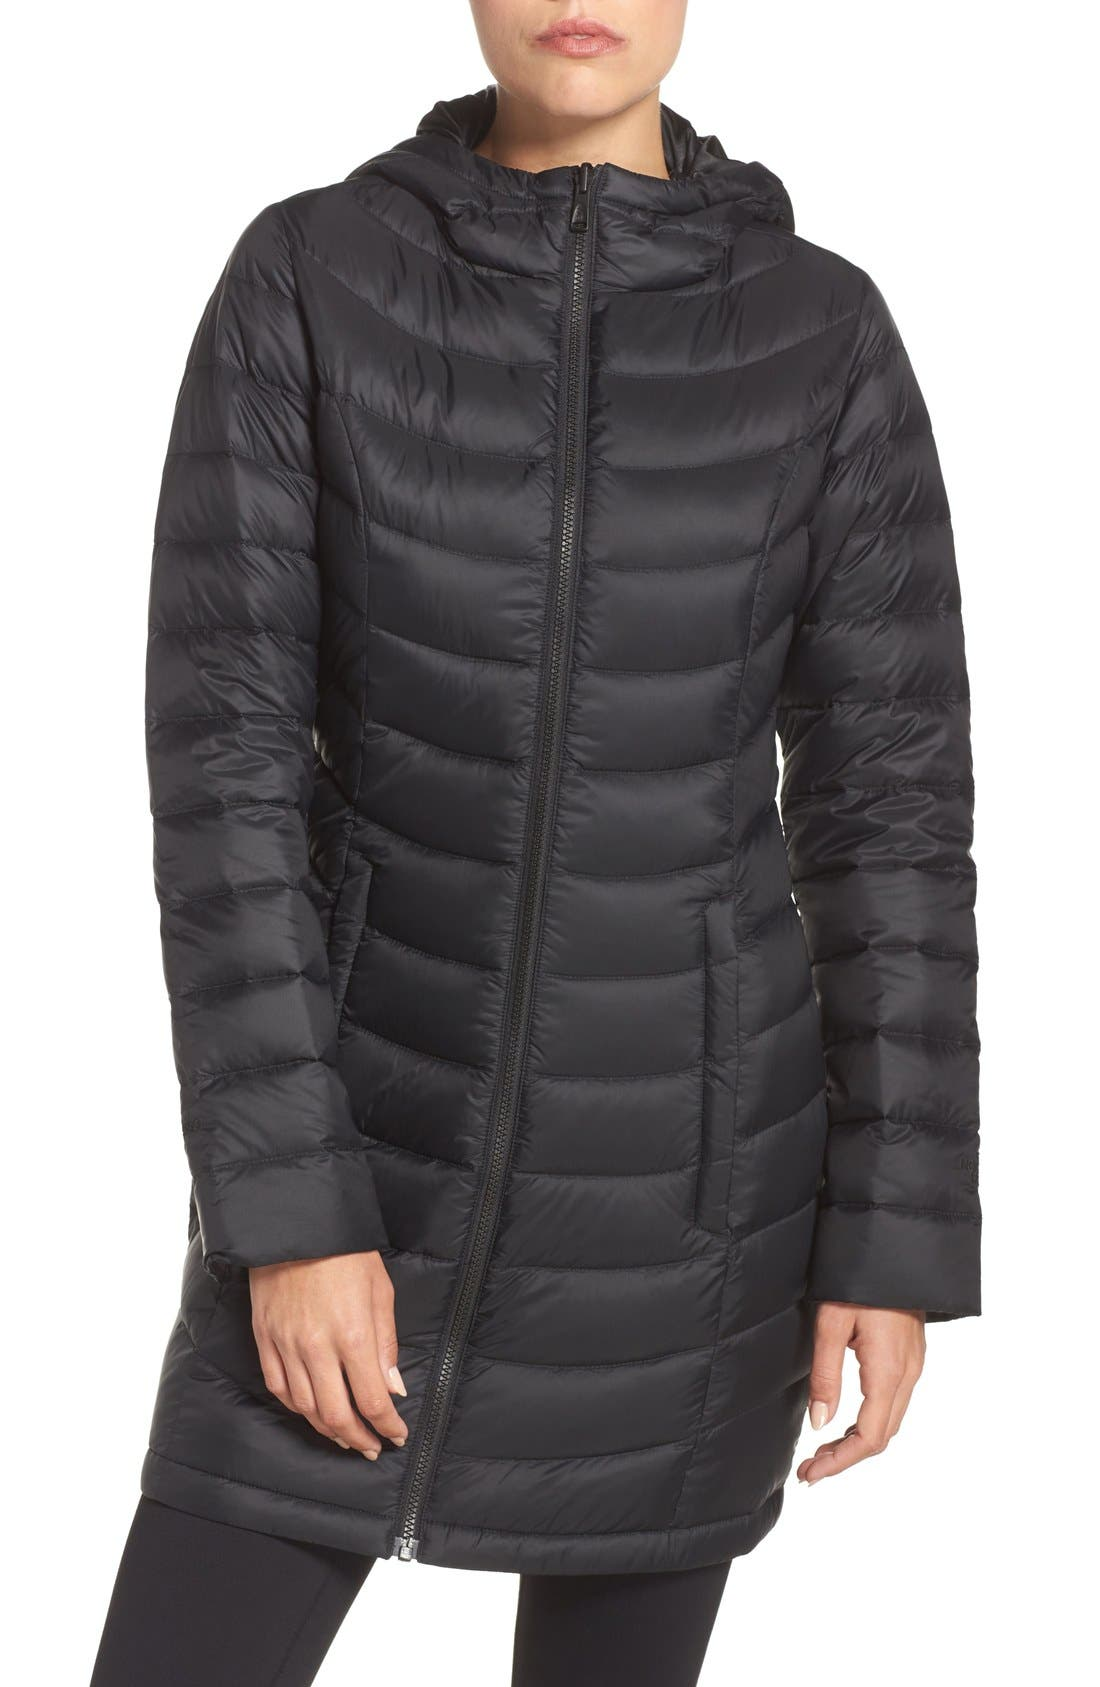 Alternate Image 1 Selected - The North Face 'Jenae' Hooded Down Jacket (Nordstrom Exclusive)